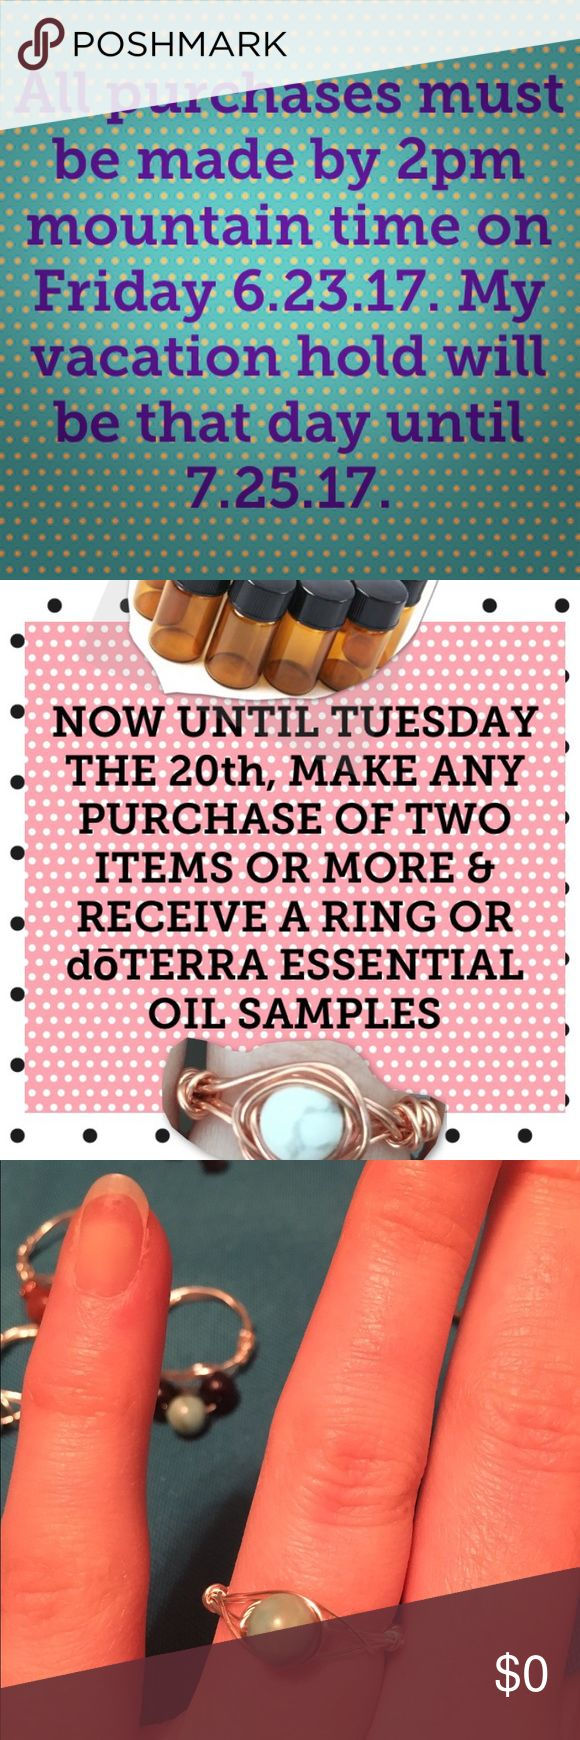 Free Ring or Oil--Upcoming Vacation Hold I will be unable to ship items while working out of state this summer, so I will place a vacation hold on my closet. FROM NOW UNTIL TUESDAY THE 20th, MAKE ANY PURCHASE OF TWO ITEMS OR MORE & RECEIVE A COMPLIMENTARY WIRE-WRAPPED RING HAND-MADE BY ME OR dōTERRA ESSENTIAL OIL SAMPLES; I'll ask you for your preference (and ring size) or you tell me :) thanks for shopping my closet! Jewelry Rings